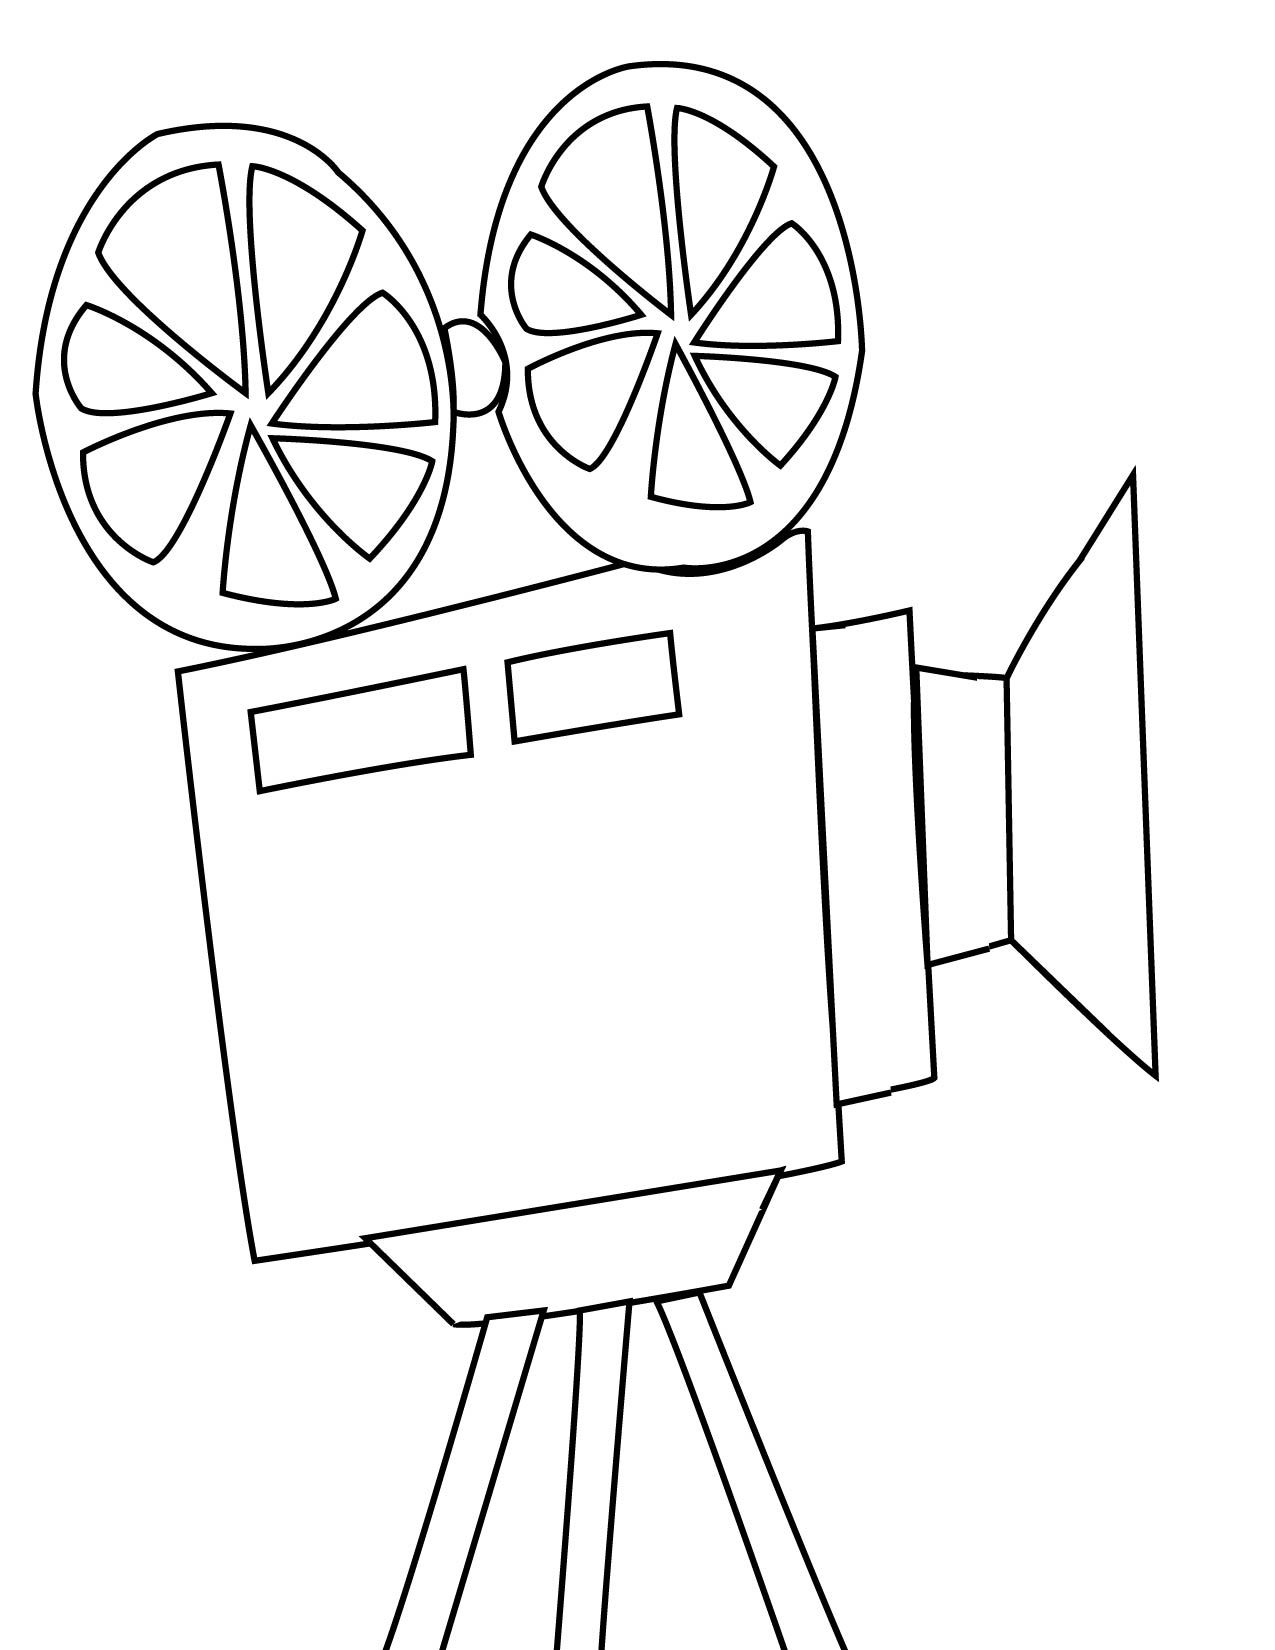 Popcorn Box Coloring Page